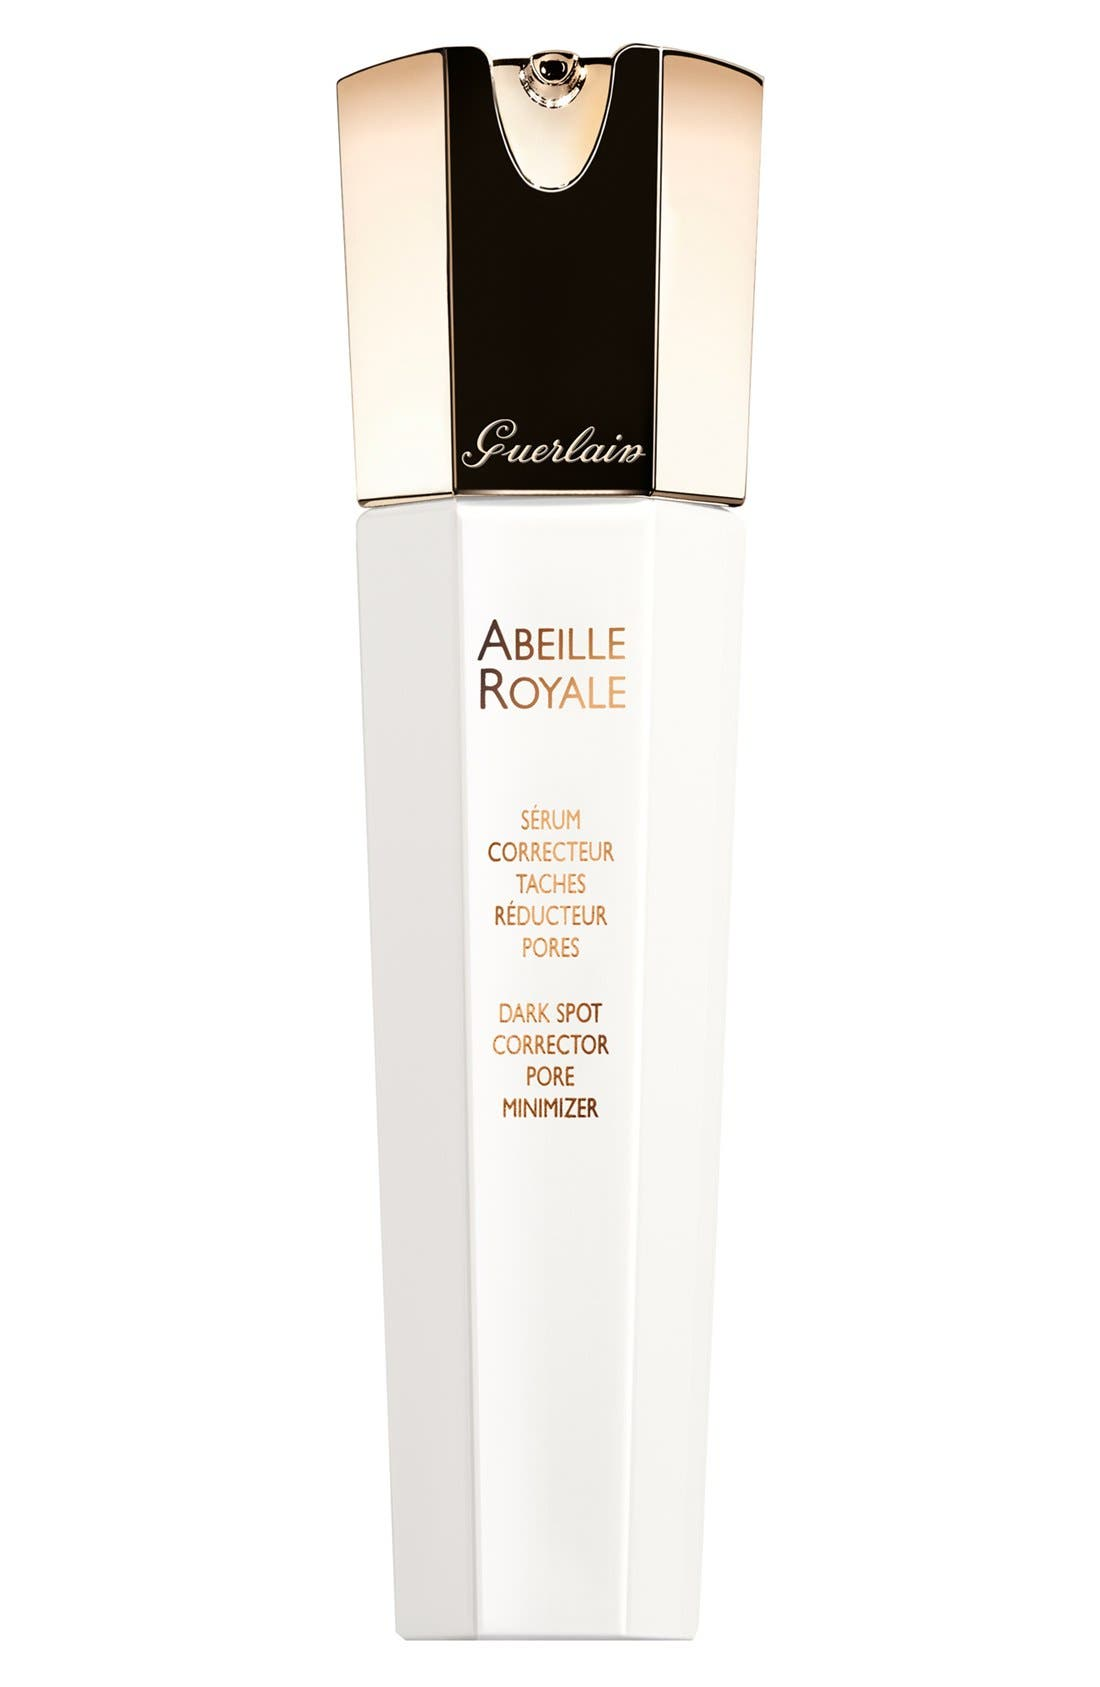 Guerlain 'Abeille Royal' Dark Spot Corrector Pore Minimizer Serum